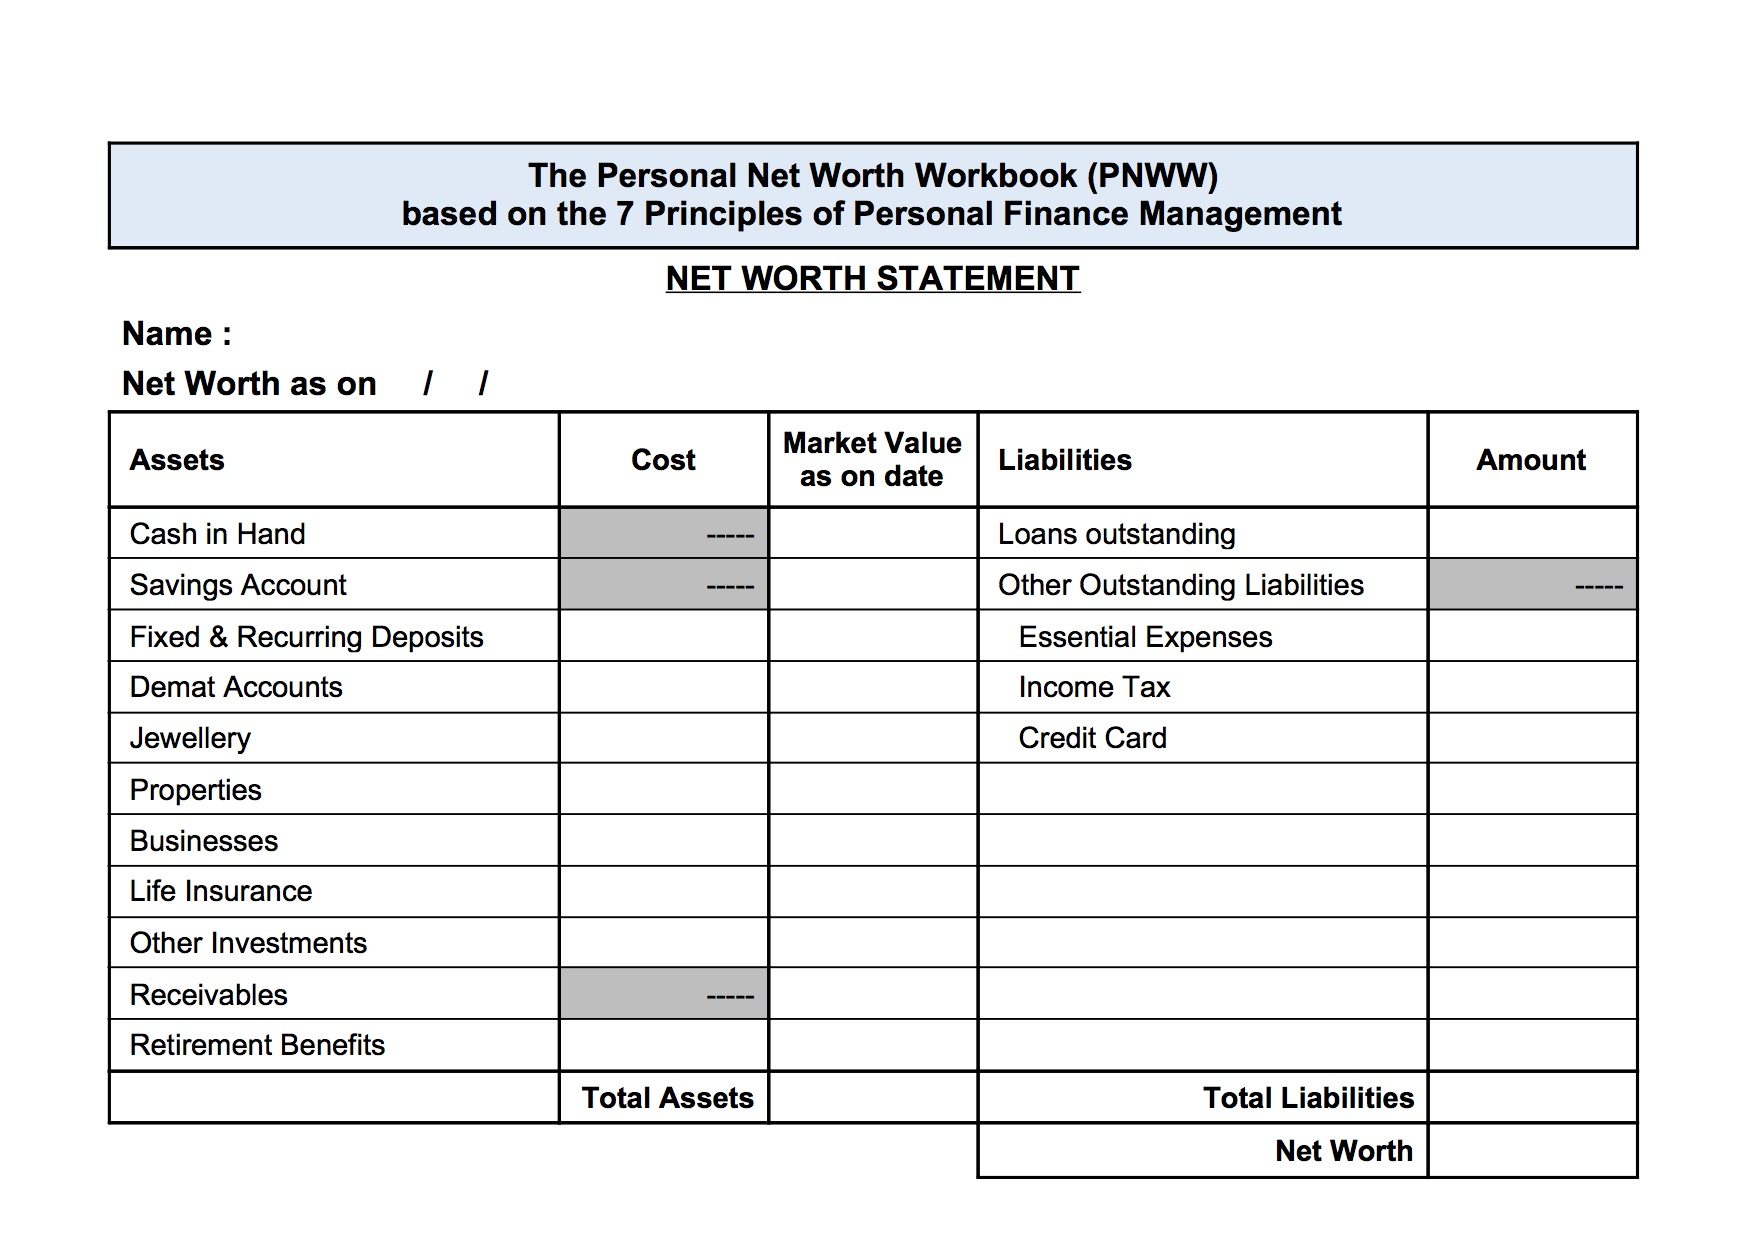 Personal Net Worth Work Book Soft Copy